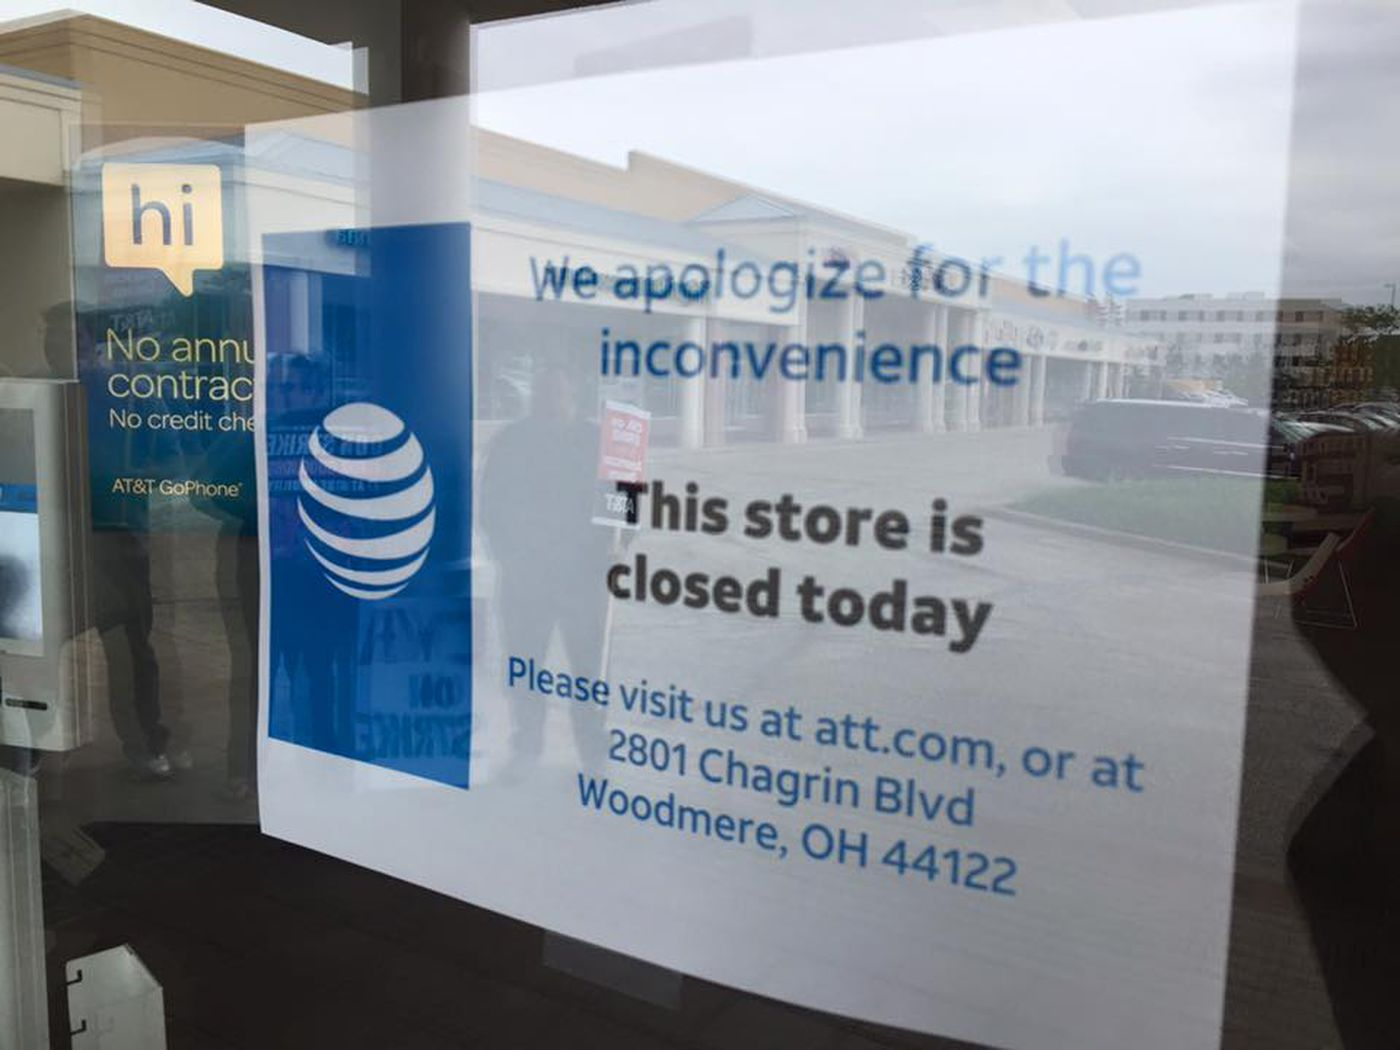 Northeast Ohio At T Employees Walk Out Prompt Temporary Store Closures